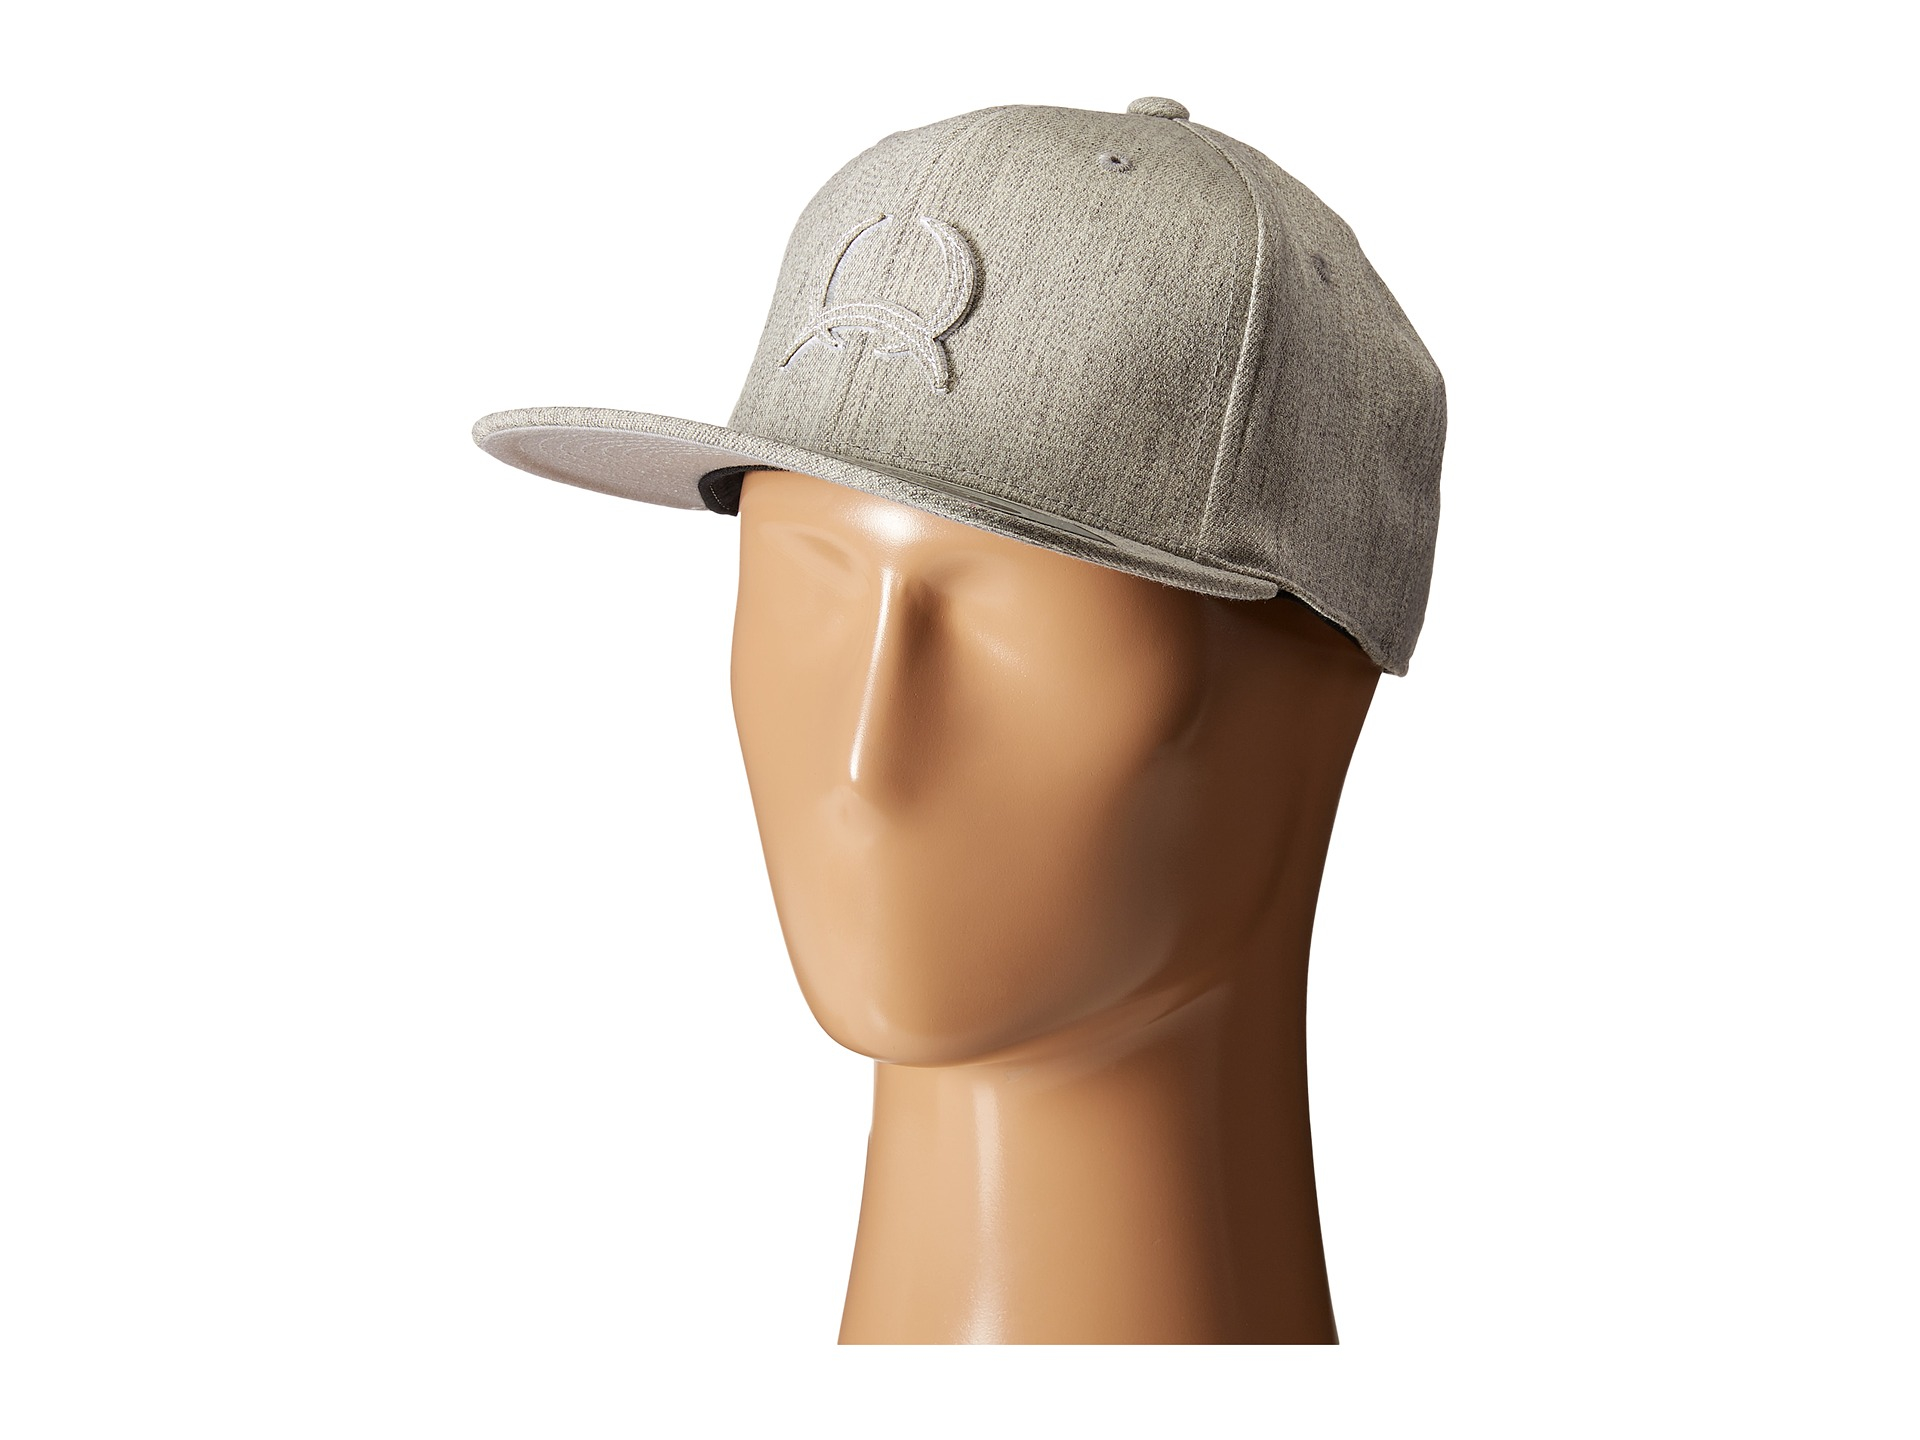 Lyst - Cinch Low Pro Art Snapback in Natural for Men 5d3ff27f0be